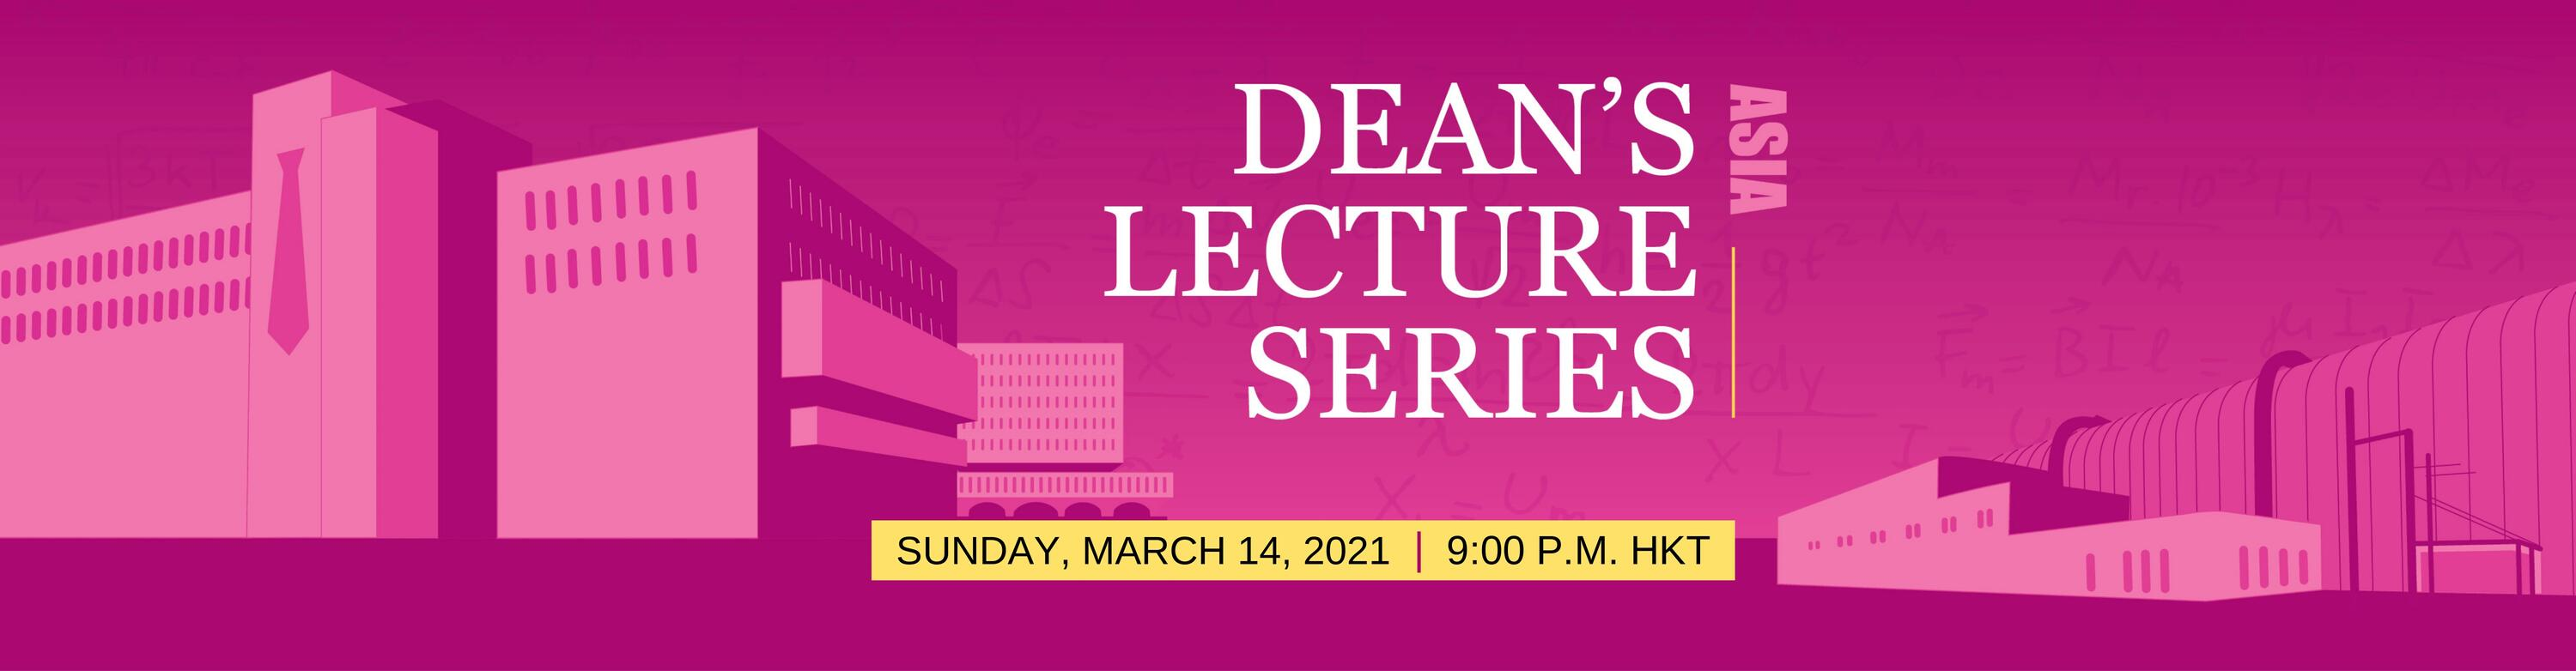 Dean's Lecture Series Banner in Pink